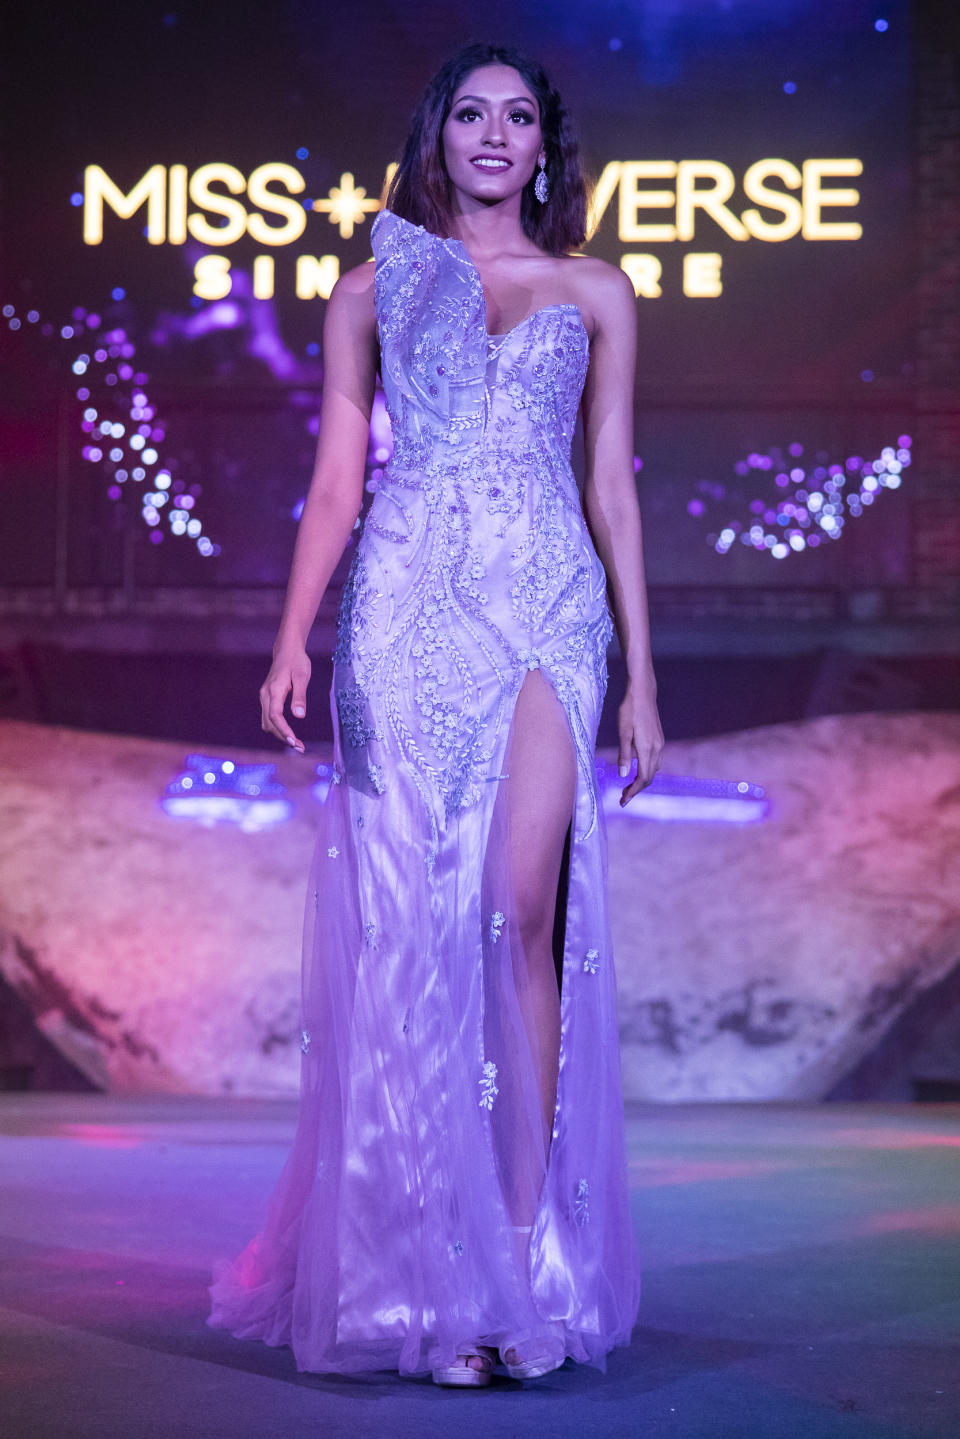 Laranya Kumar competing in the evening gown segment during the 2019 Miss Universe Singapore at Zouk.